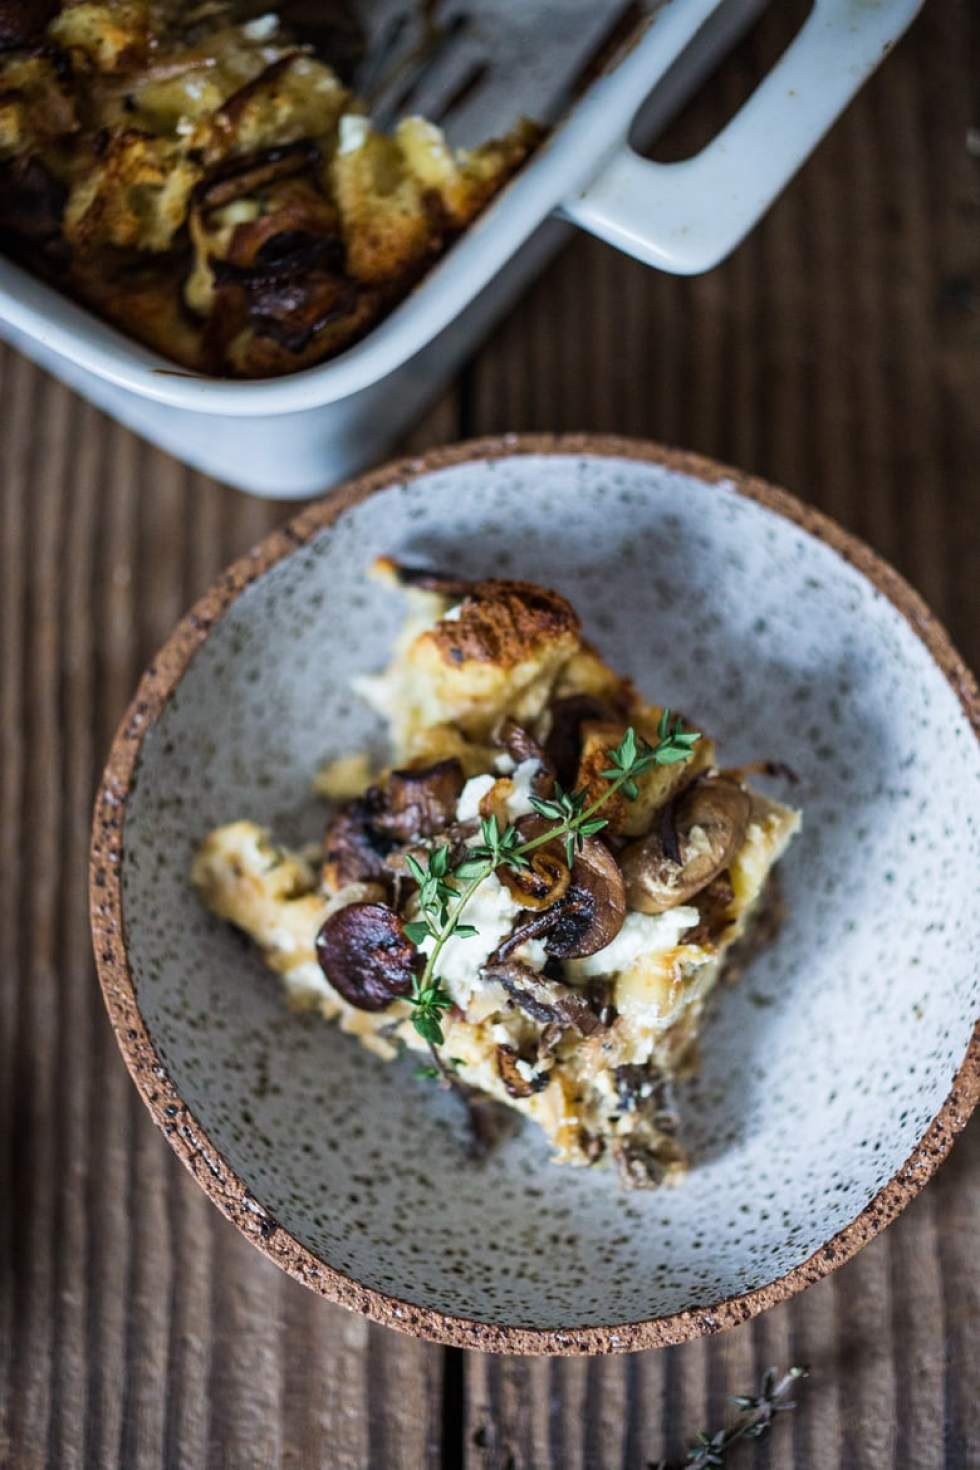 Breakfast Strata w/ Mushrooms, caramelized onion, Goat cheese